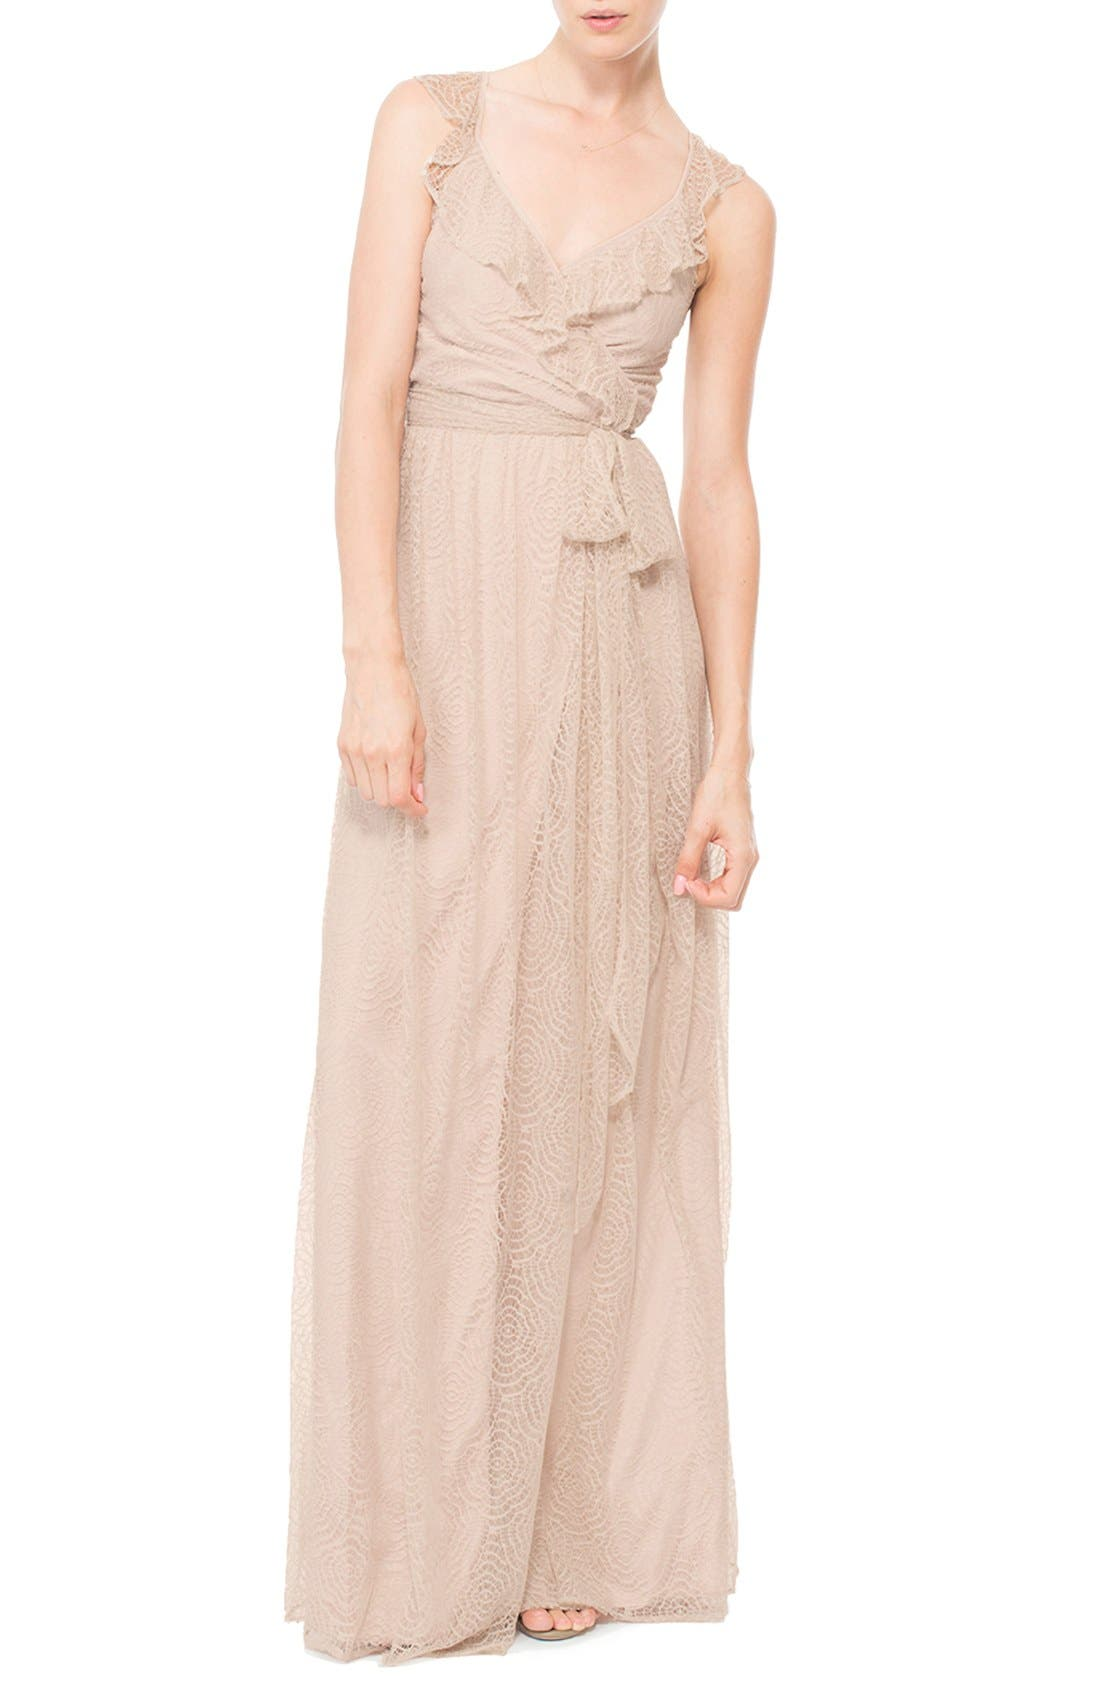 Alternate Image 1 Selected - Ceremony by Joanna August 'Lacey' Ruffle Wrap Lace Dress